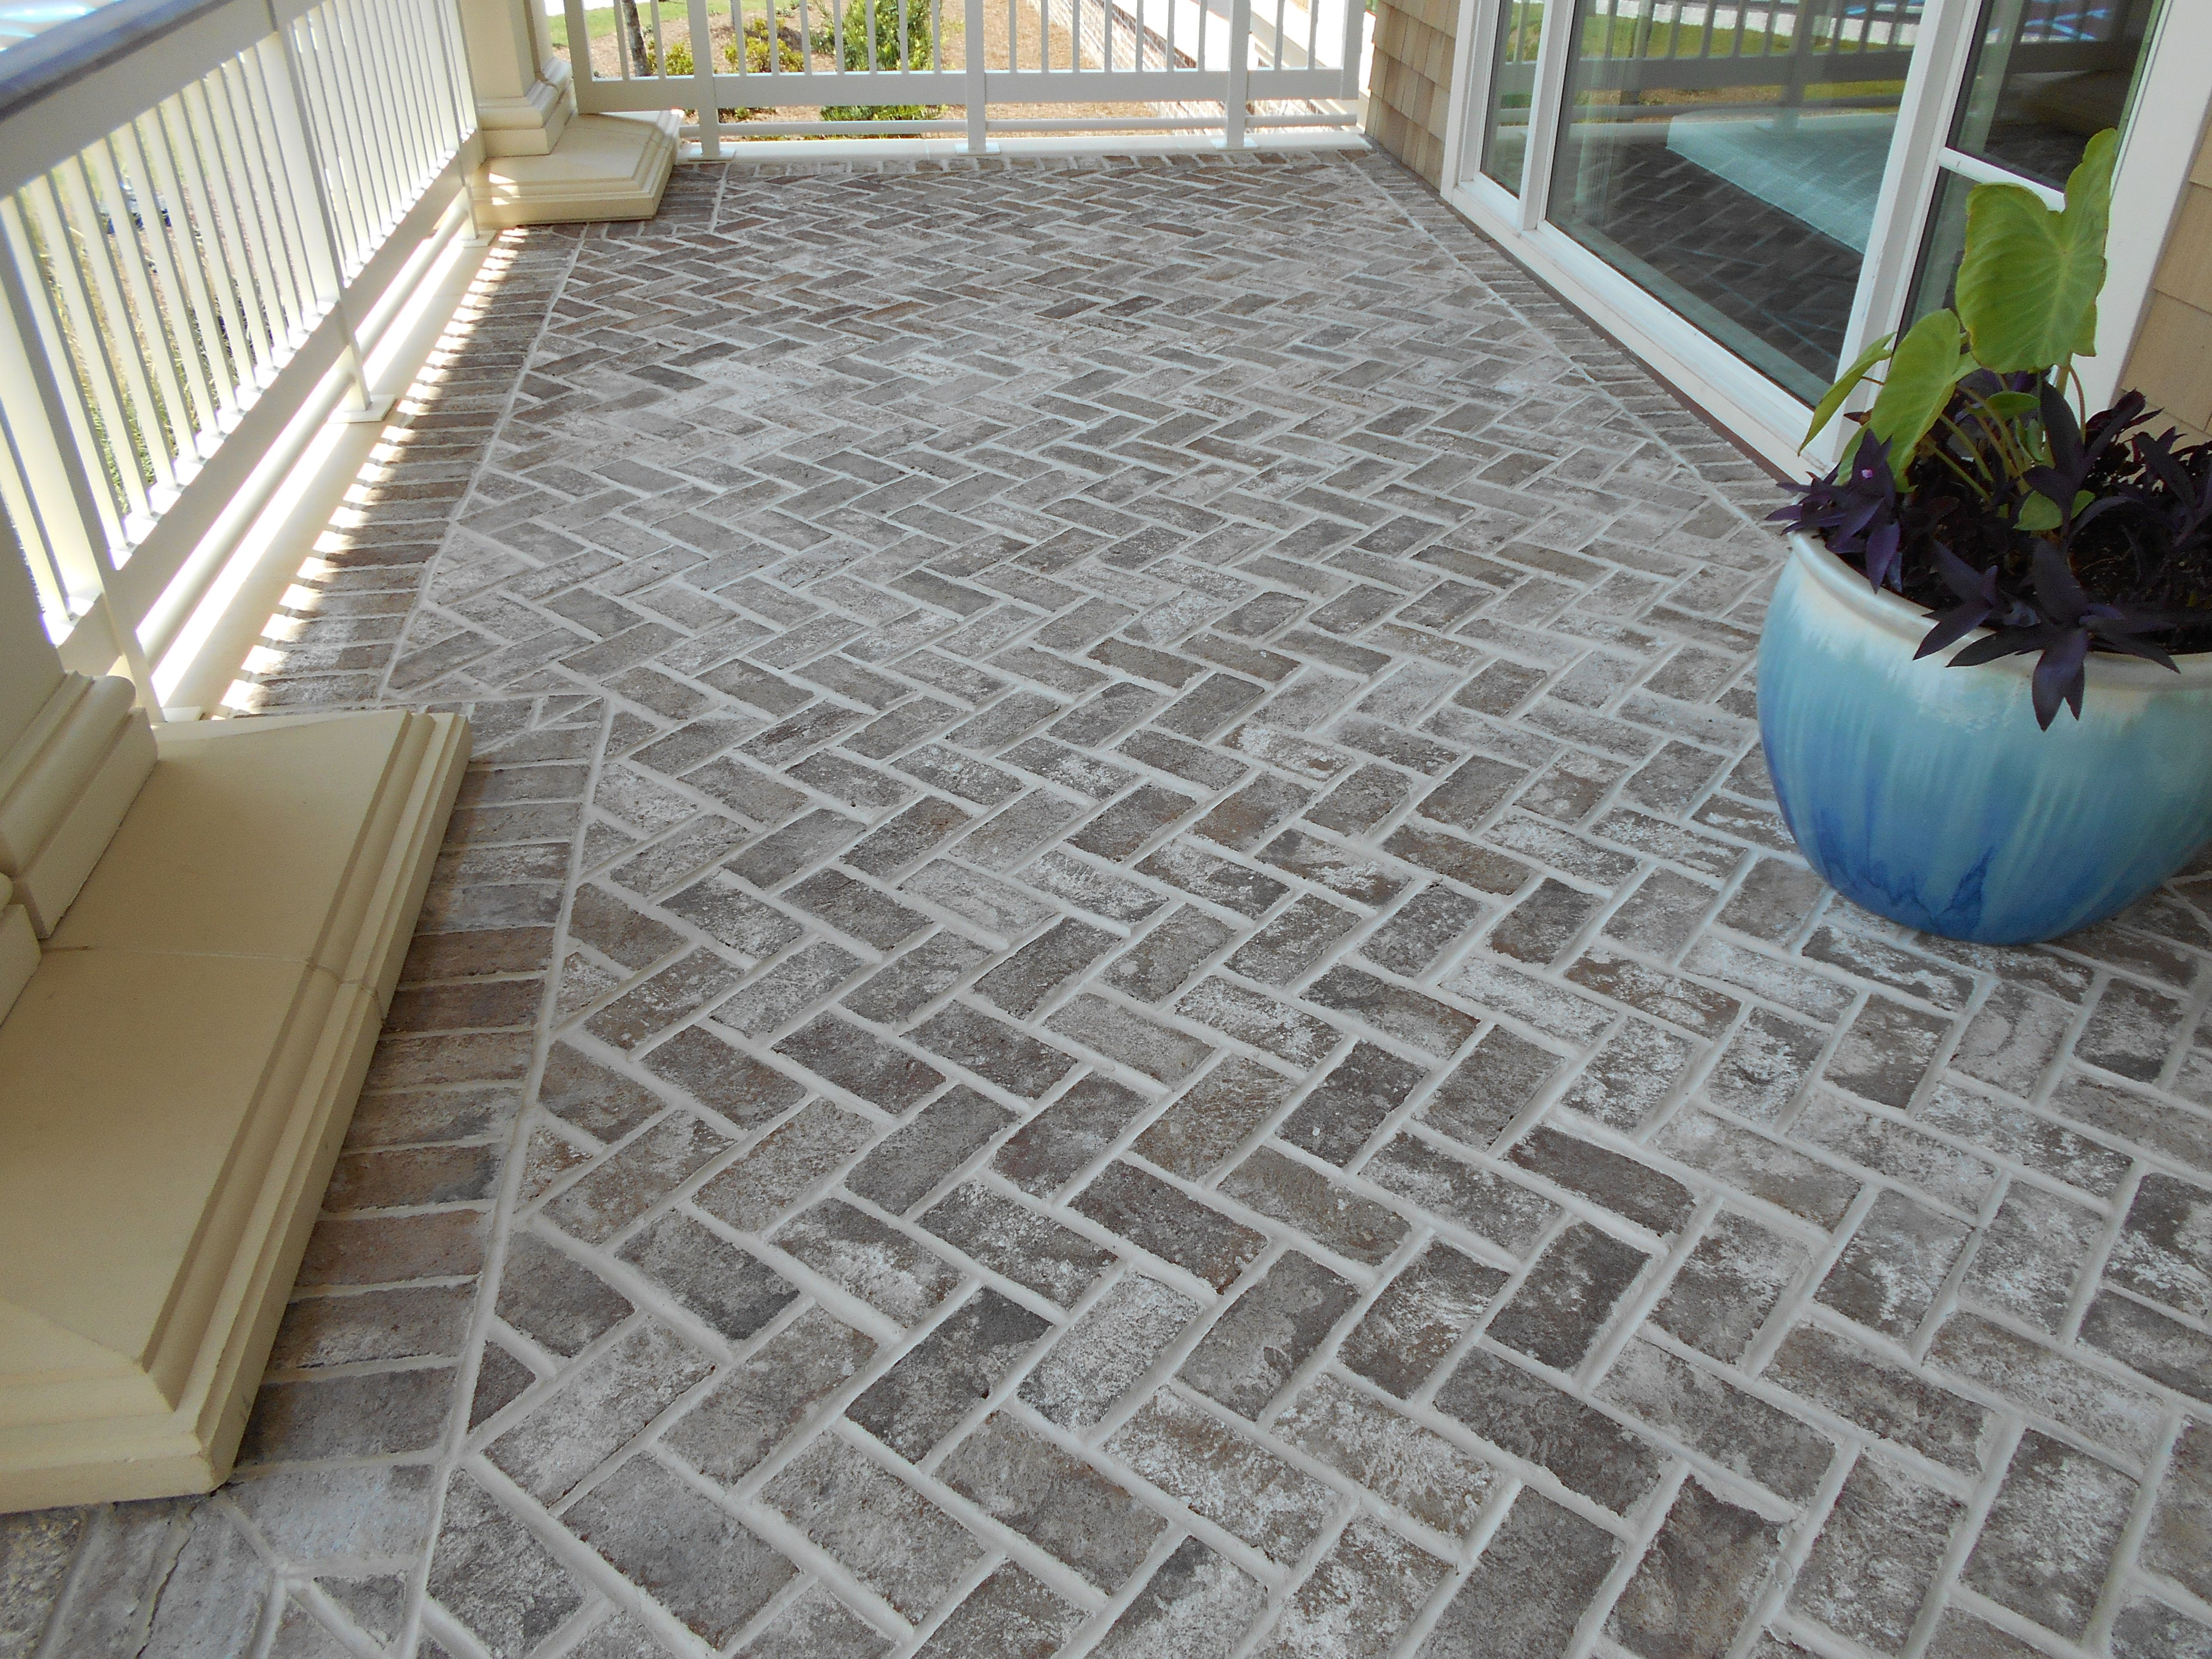 Our Normal Savannah Grey Oversize Genuine Handmade Brick Used As Pavers In A Herringbone Pattern At The Plantation Golf Club Sea Pines Resort On Hilton